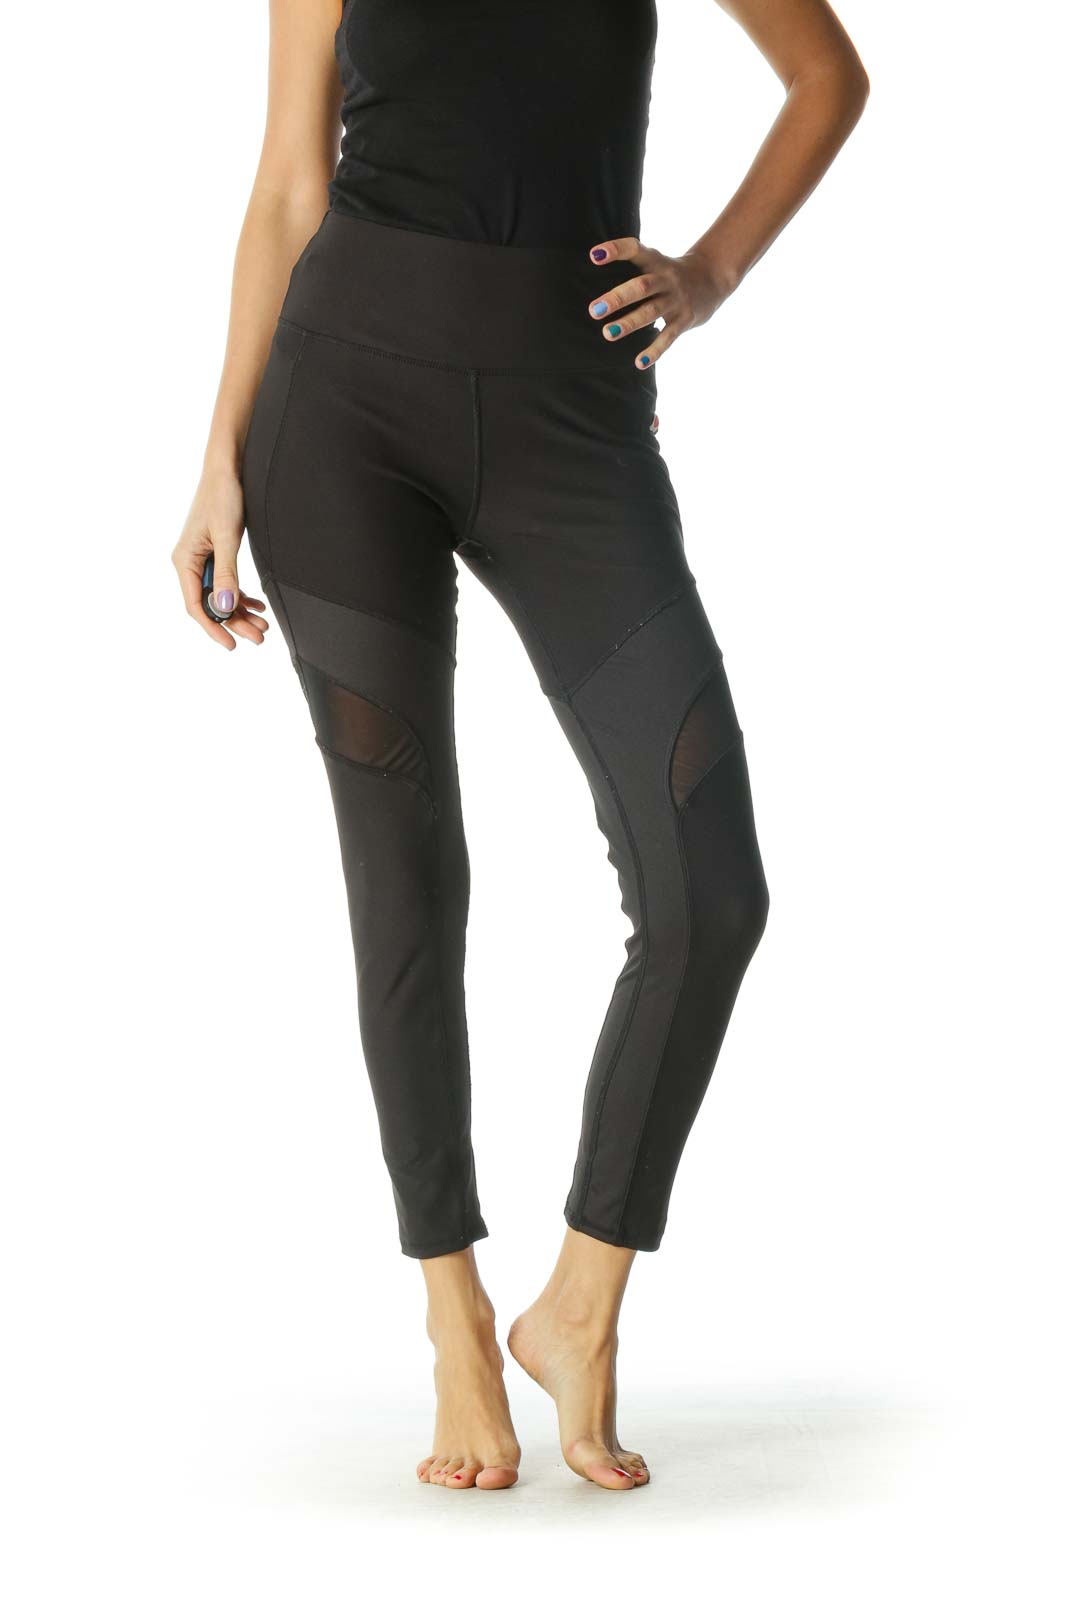 Black Mesh Paneled Leggings